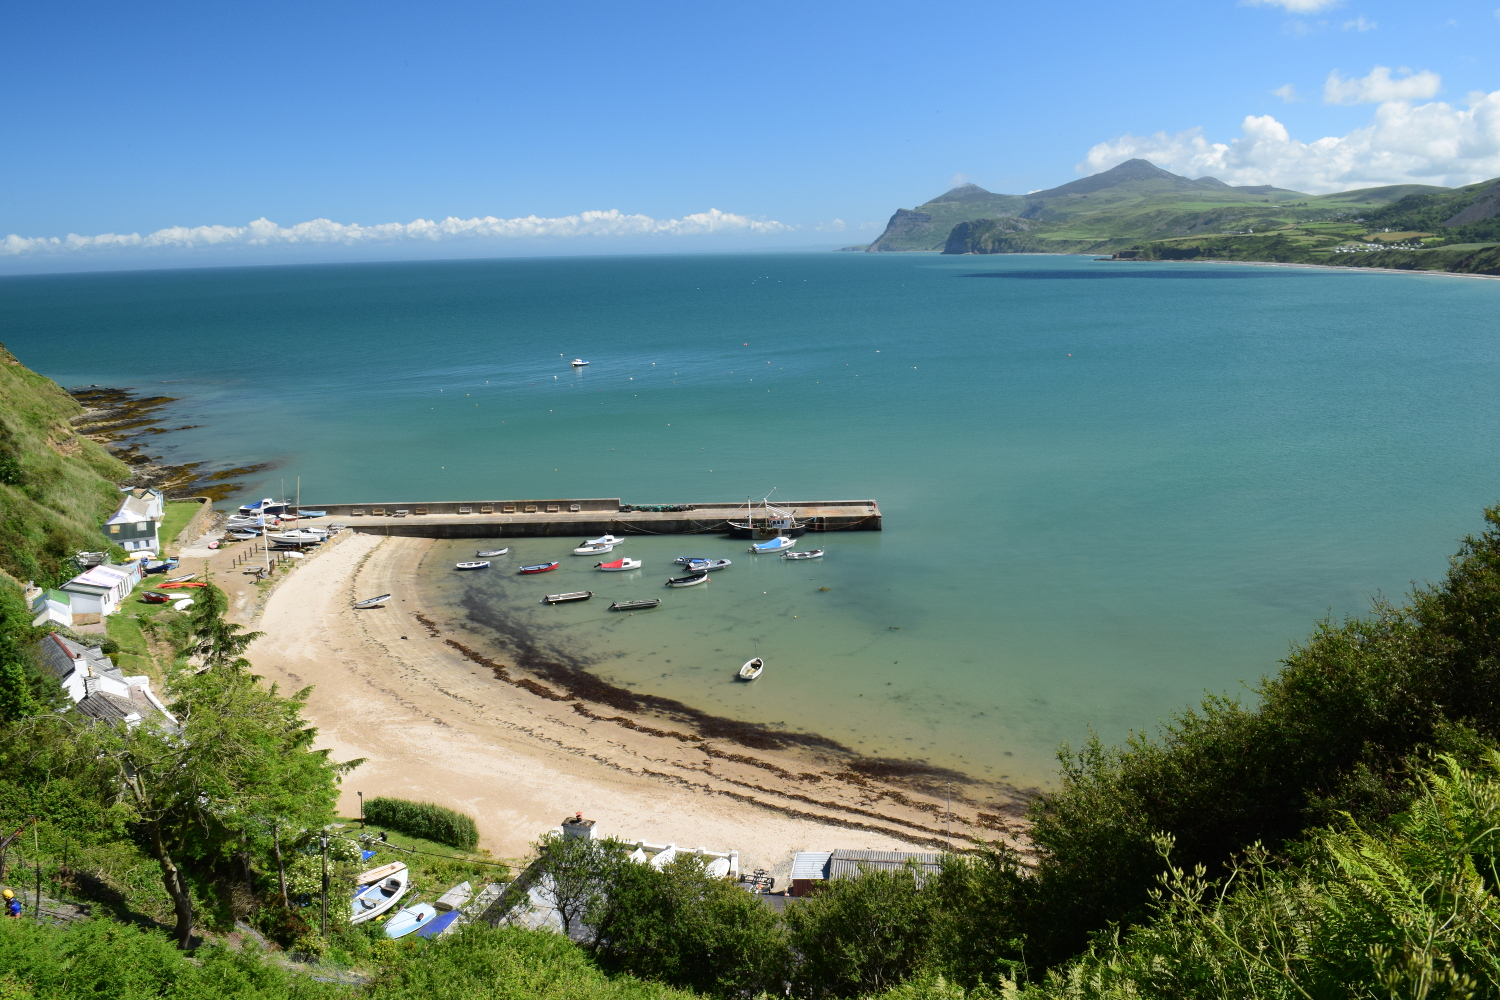 A view of the beach and harbour of Nefyn taken from the wales coastal path